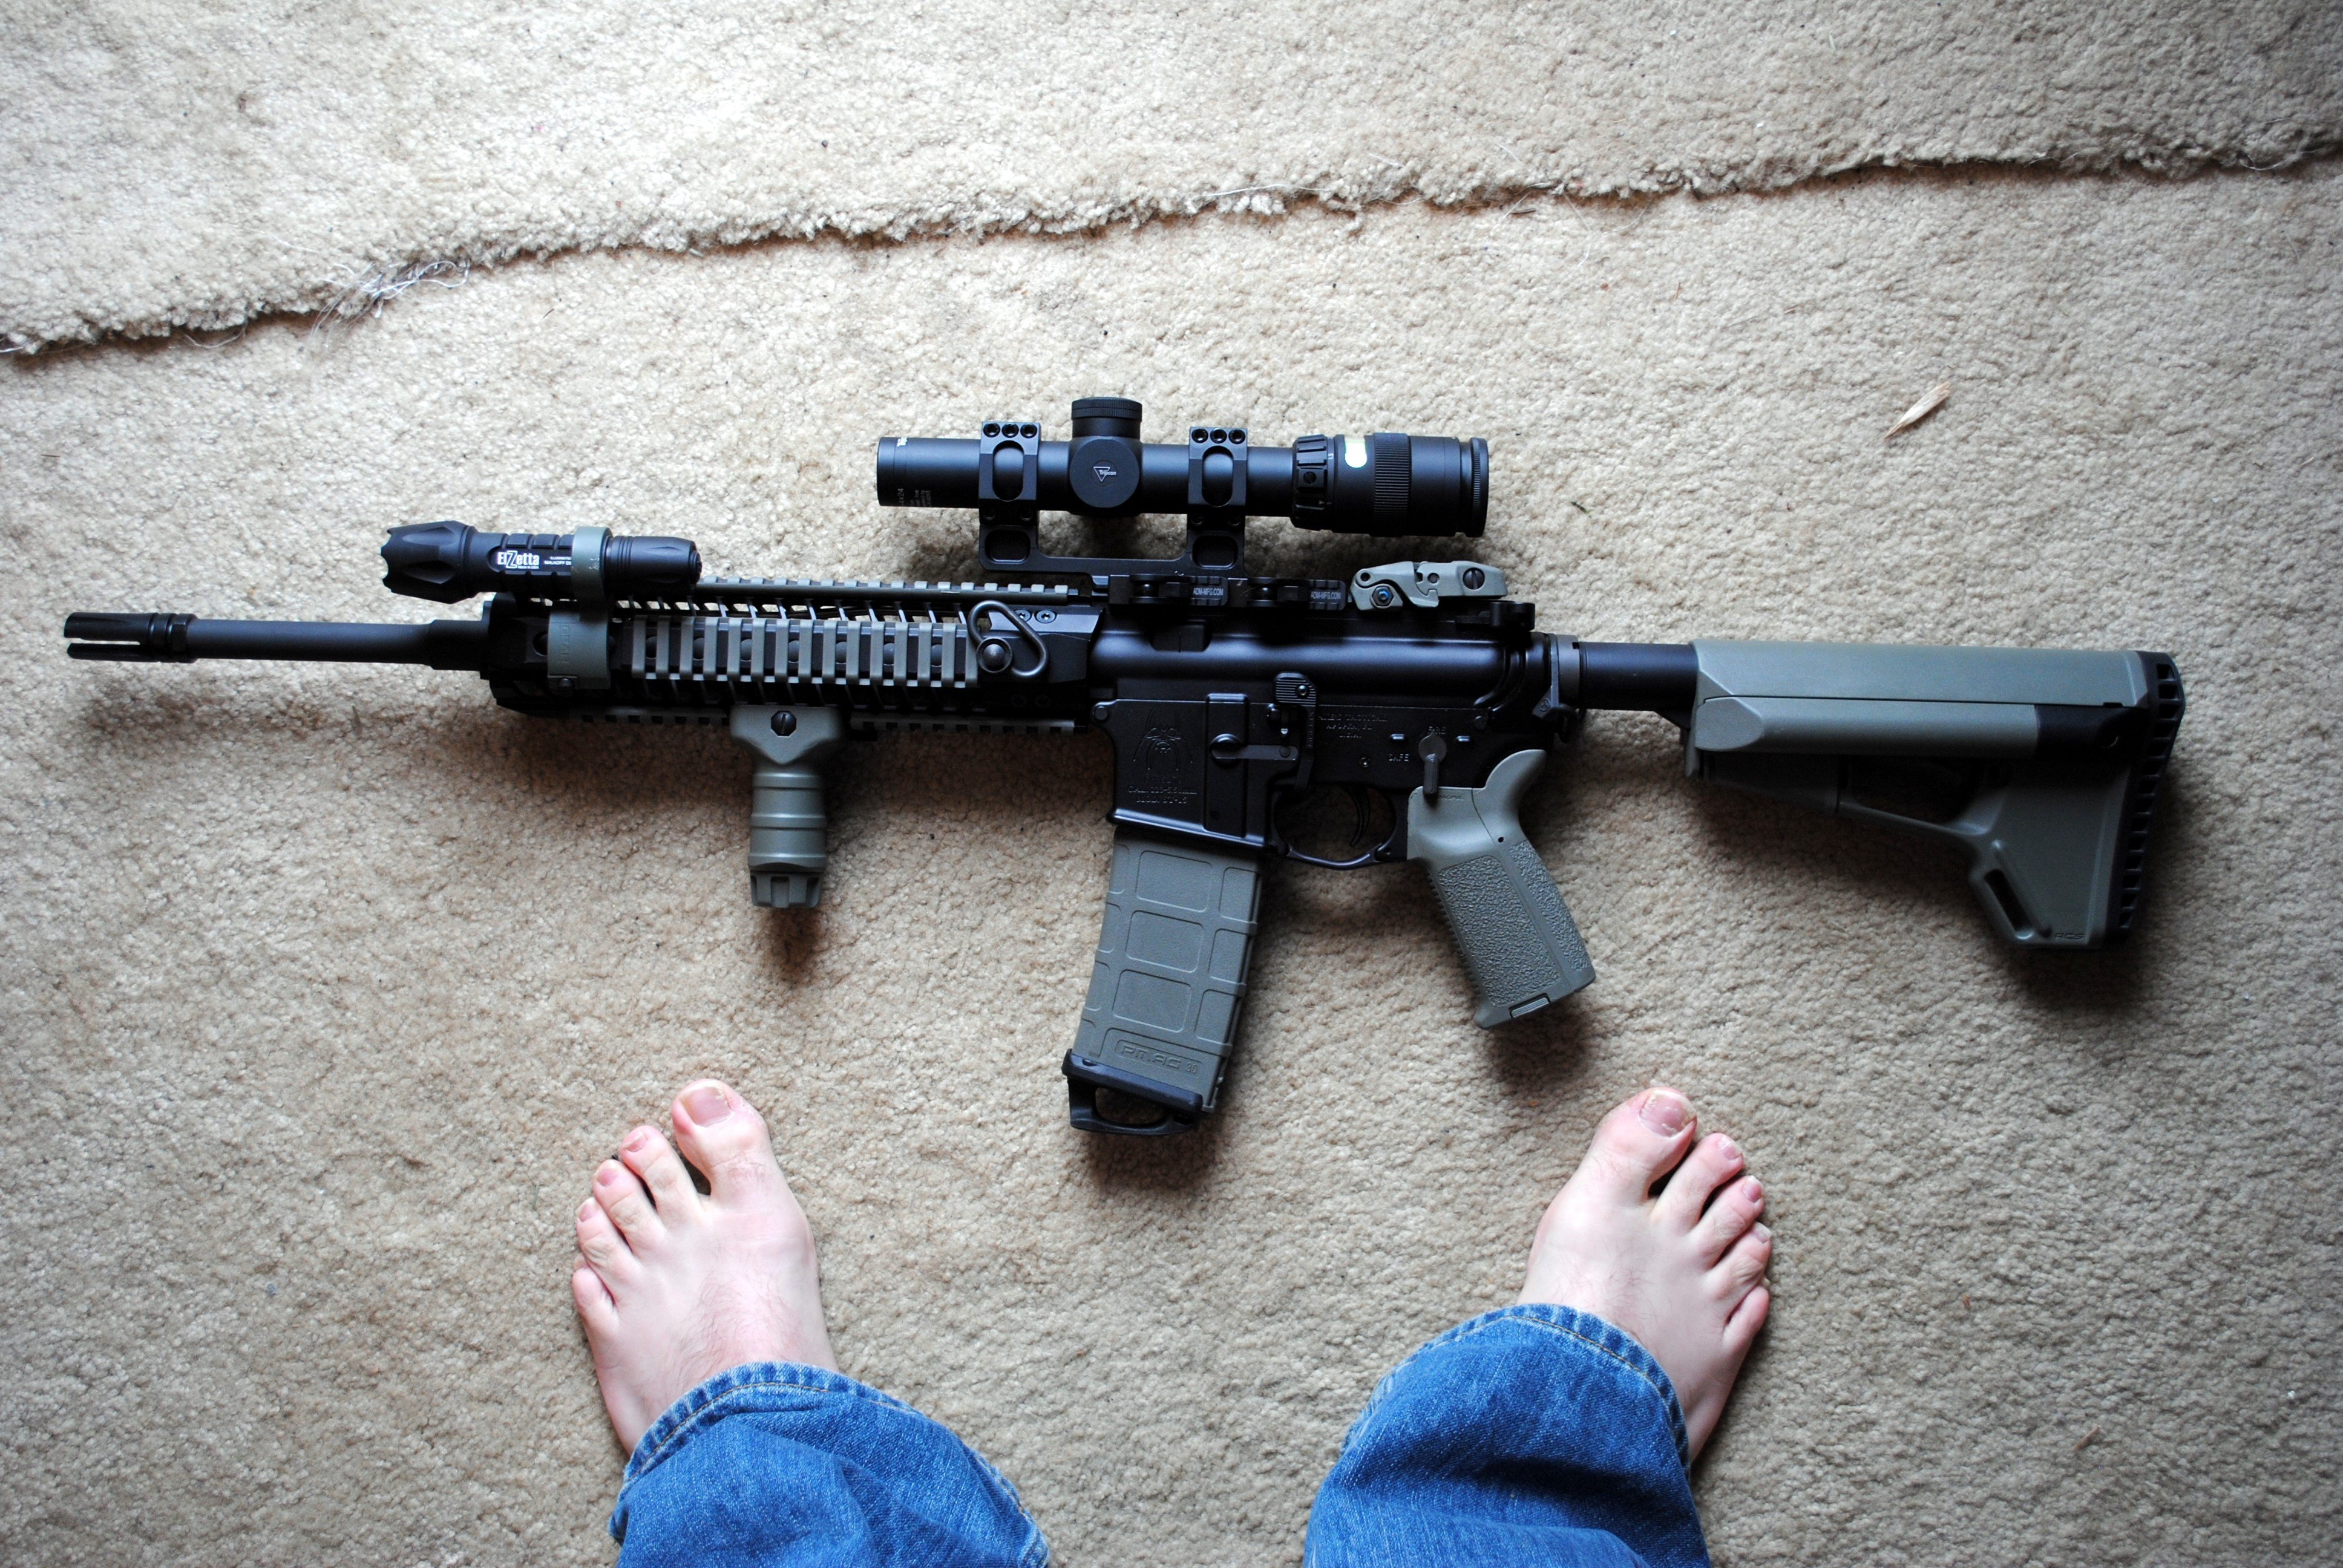 My first AR-15 project, built to make the internet proud (right down to the feet-in-the-frame picture)